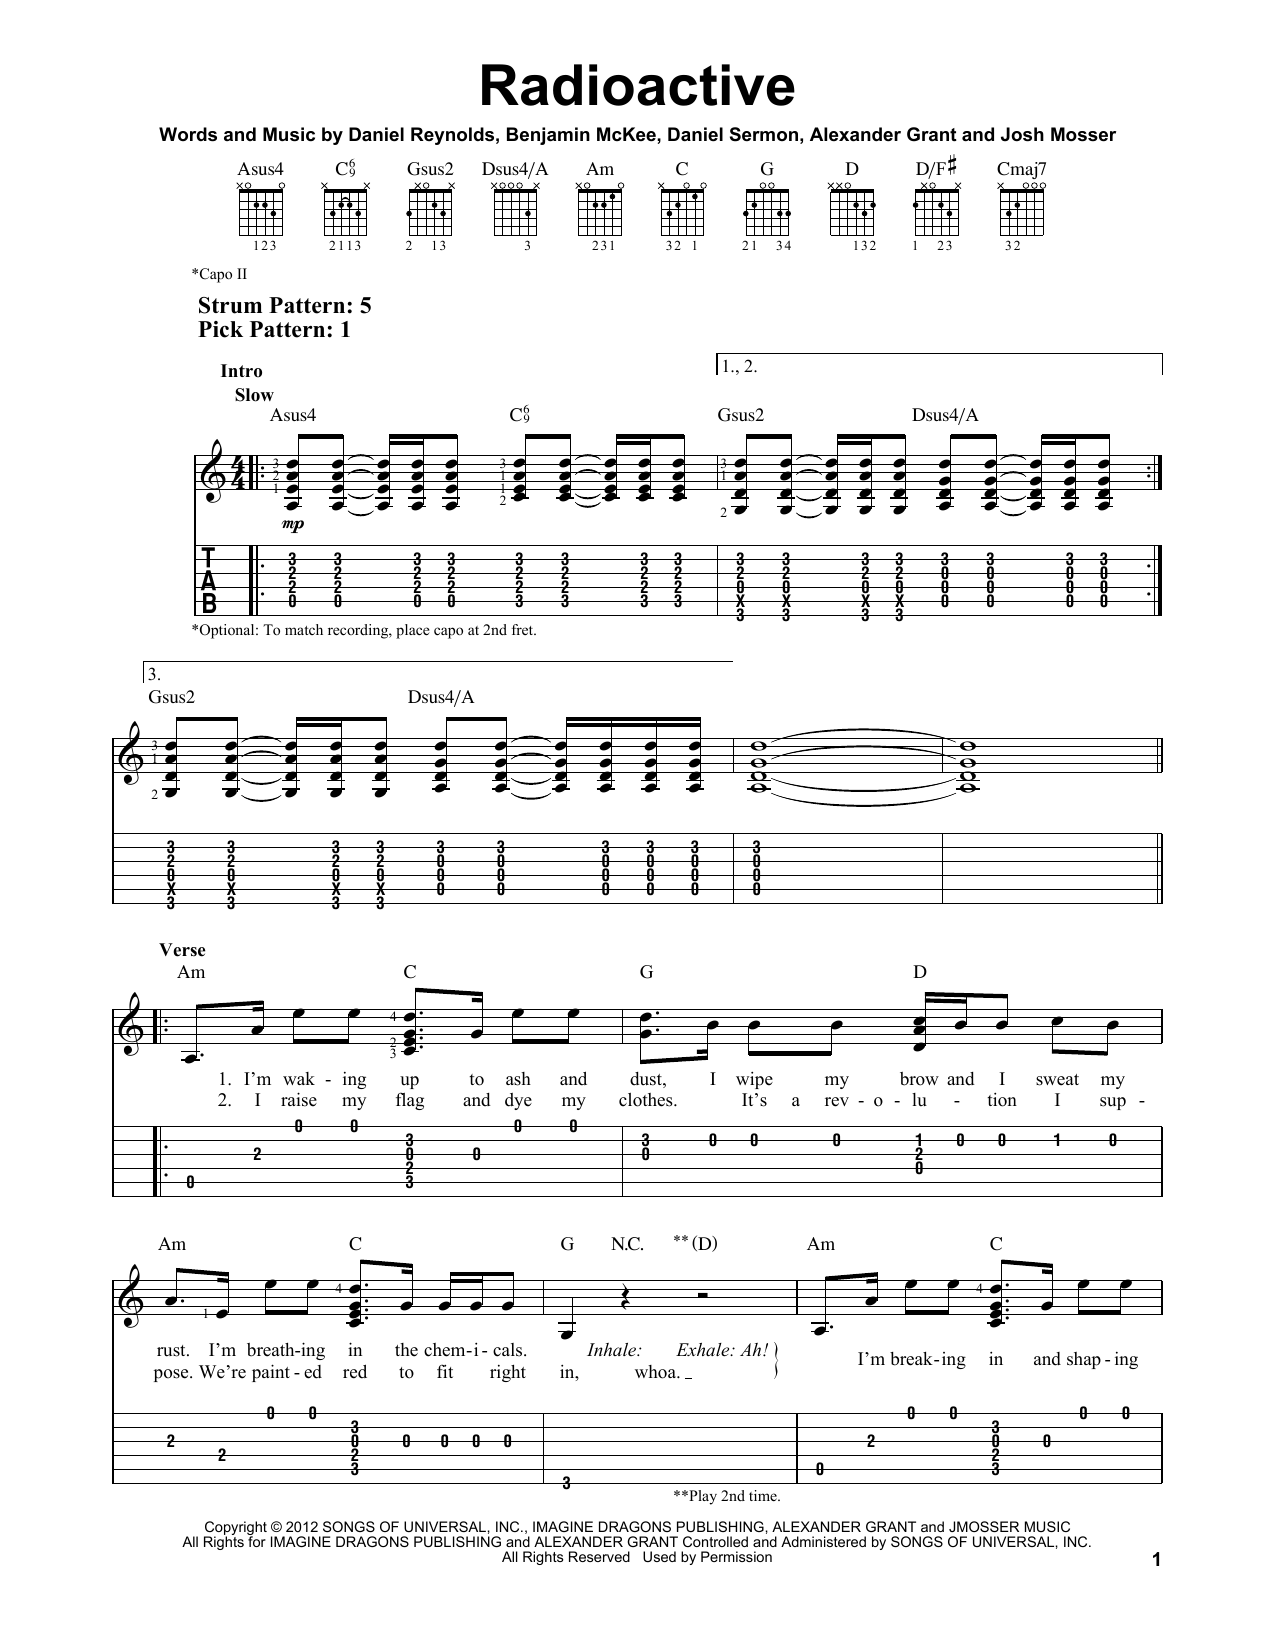 IMAGINE CHORDS and TABS by John Lennon with Video Lesson